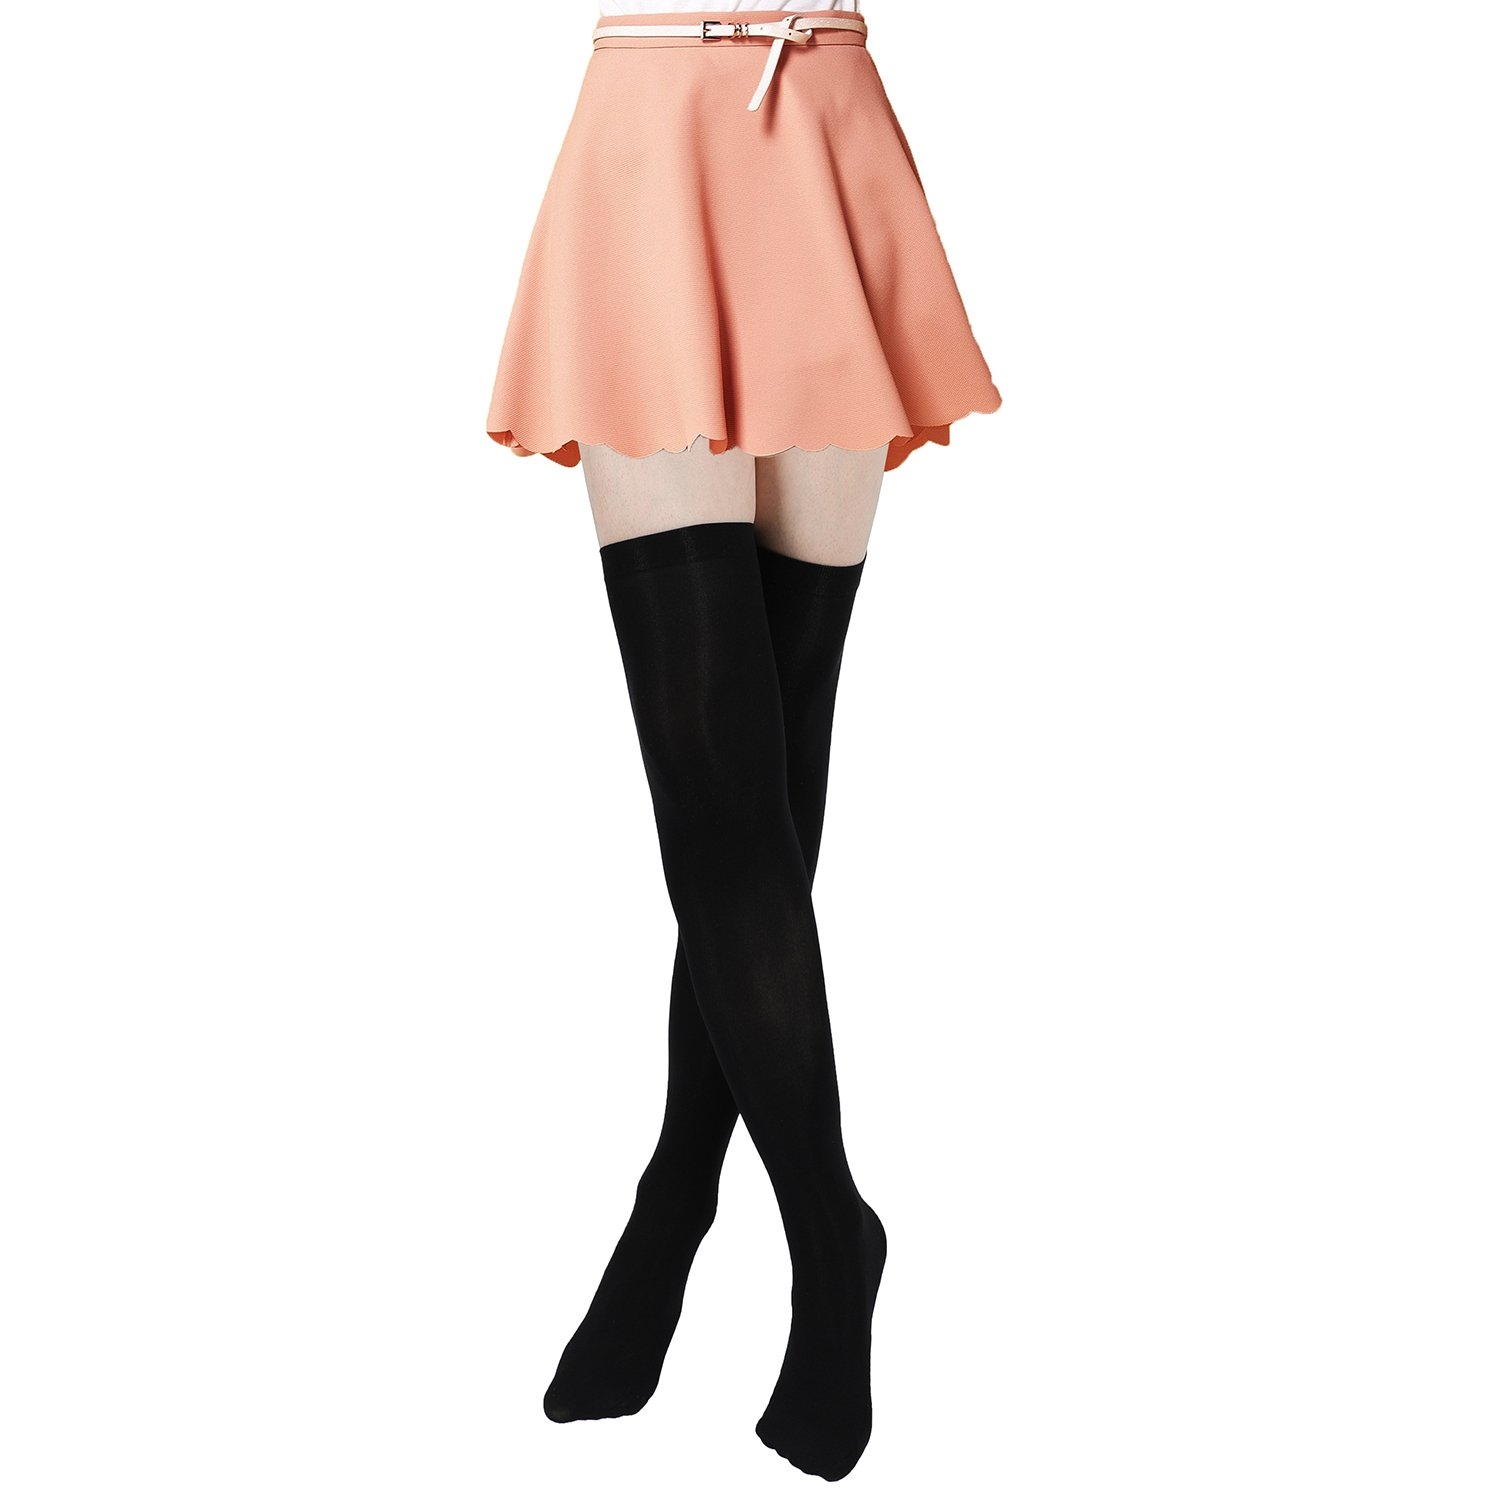 Women's Thigh High Stockings Socks of Solid Color Opaque Sexy,Over the Knee High Leg Socks 5-Pairs(Black) by VANGAY (Image #5)